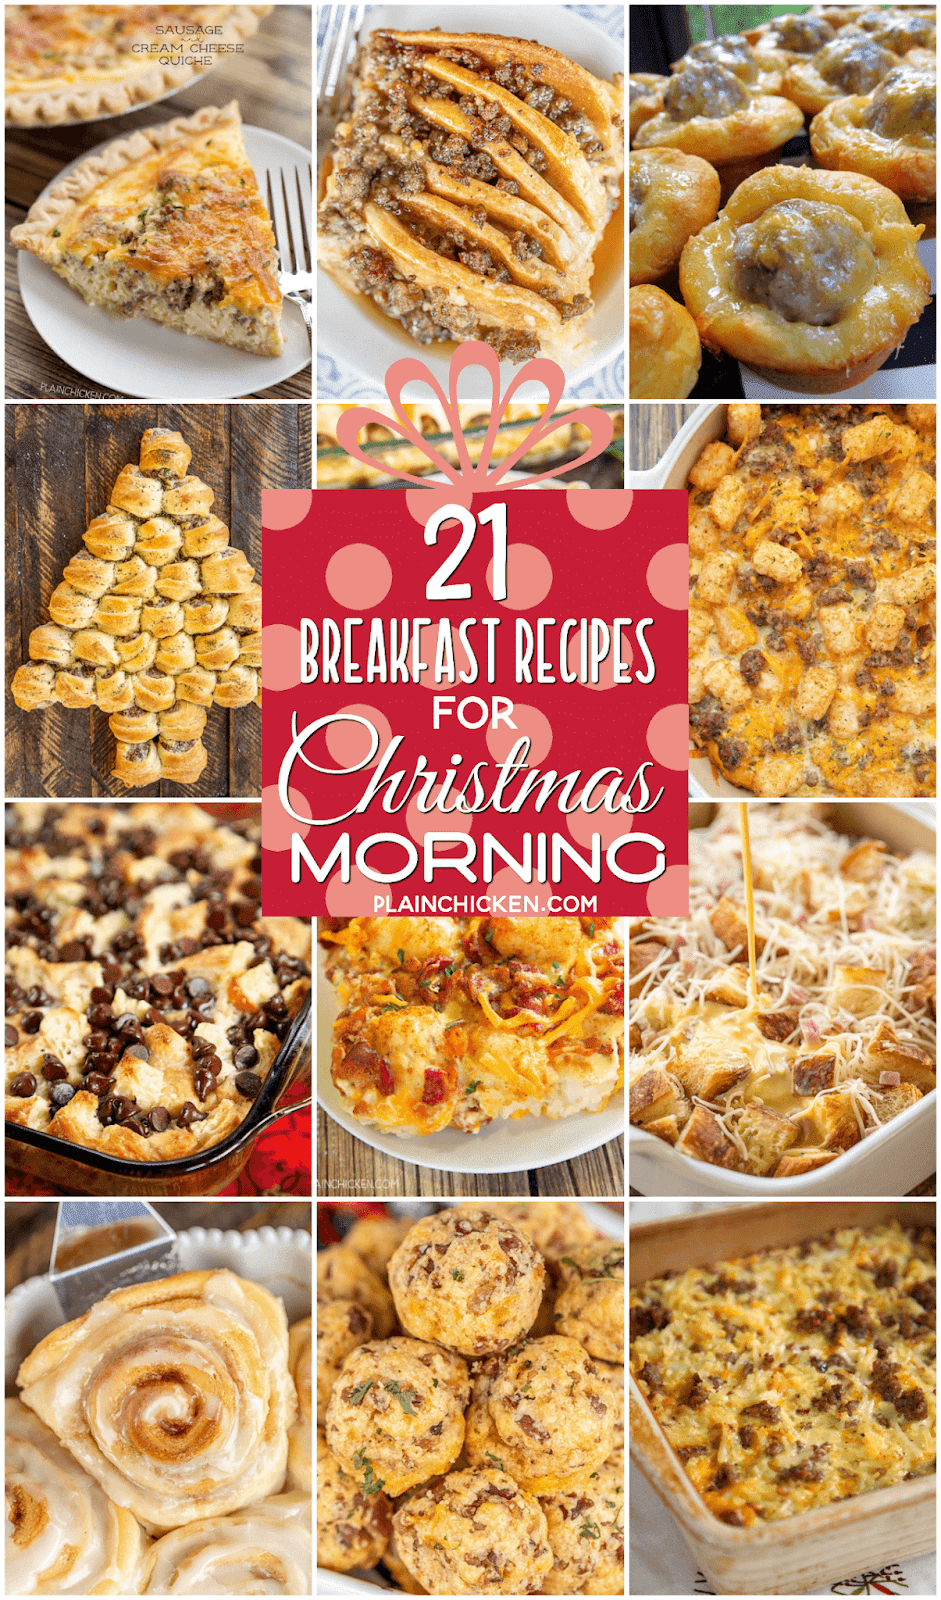 collage of 12 breakfast recipes